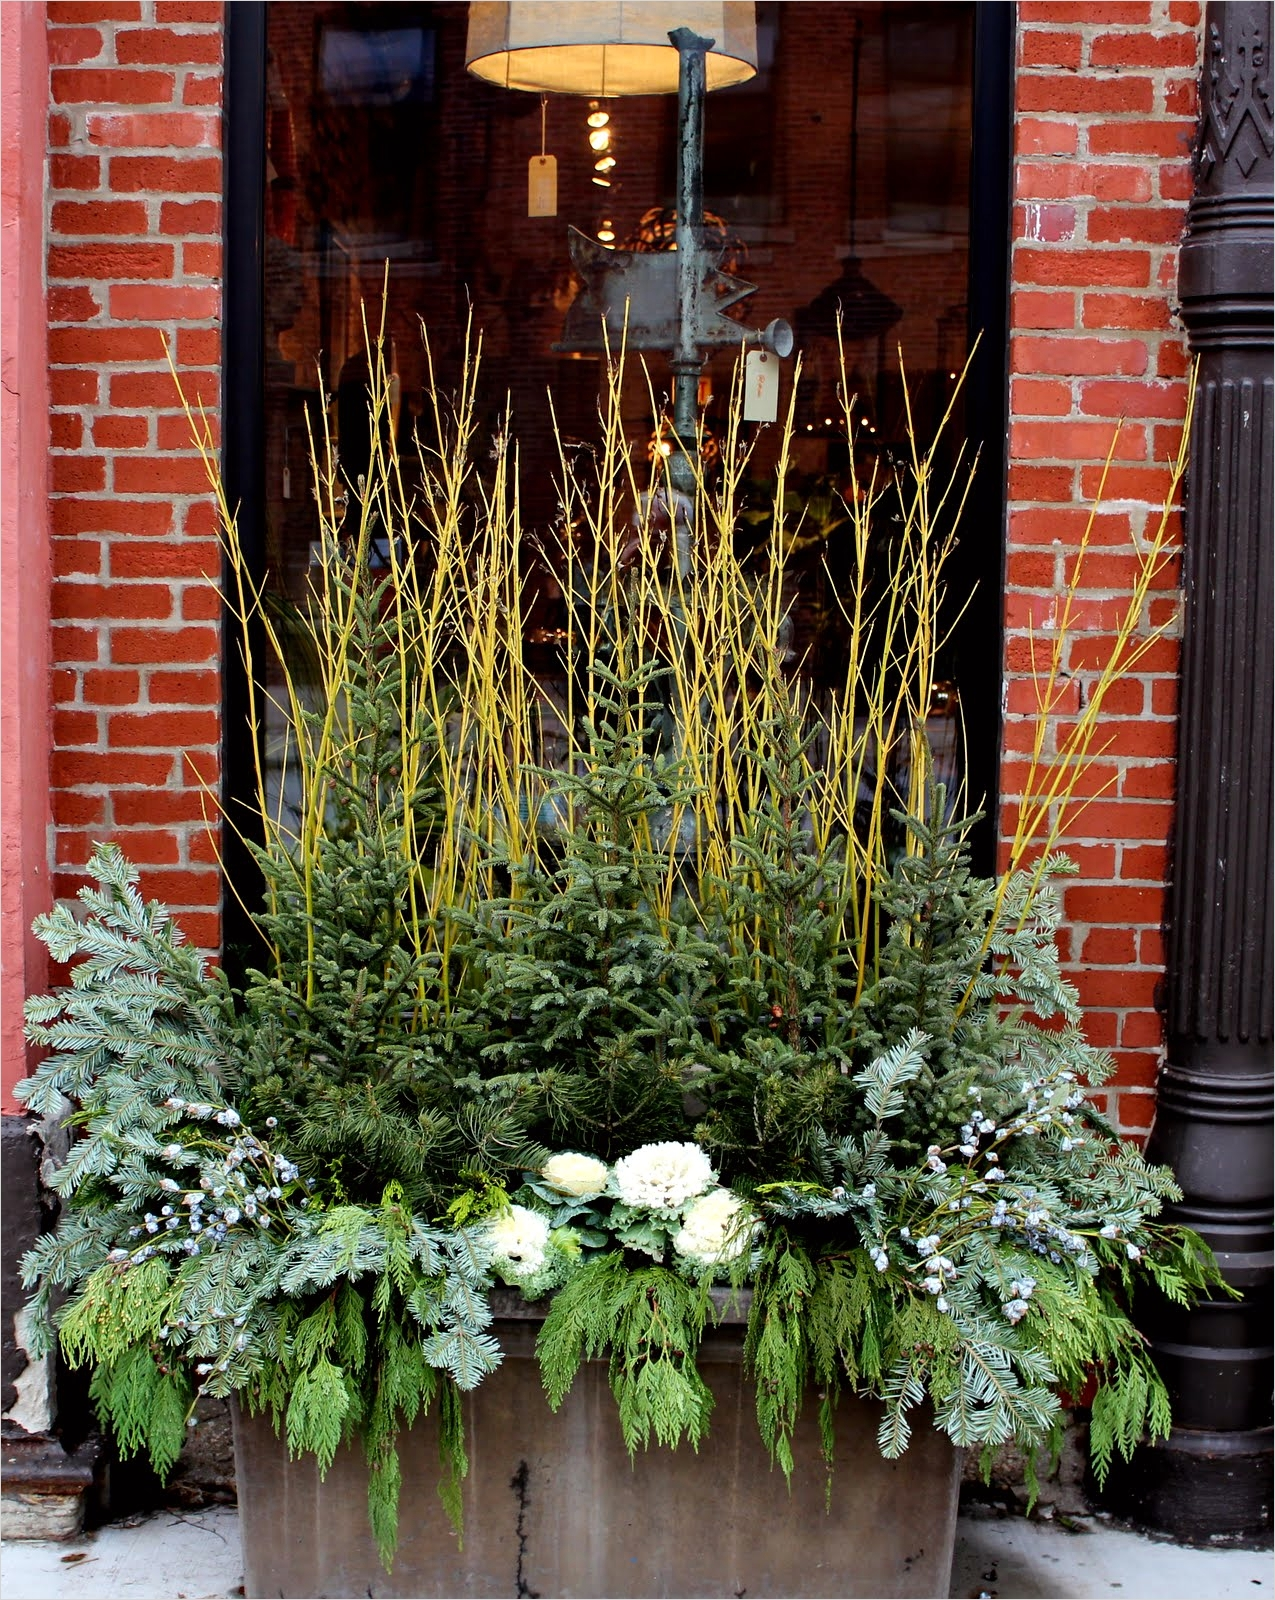 42 Beautiful Christmas Outdoor Pot Decorations Ideas 76 5th and State Winter Containers Ideas for Diy 5